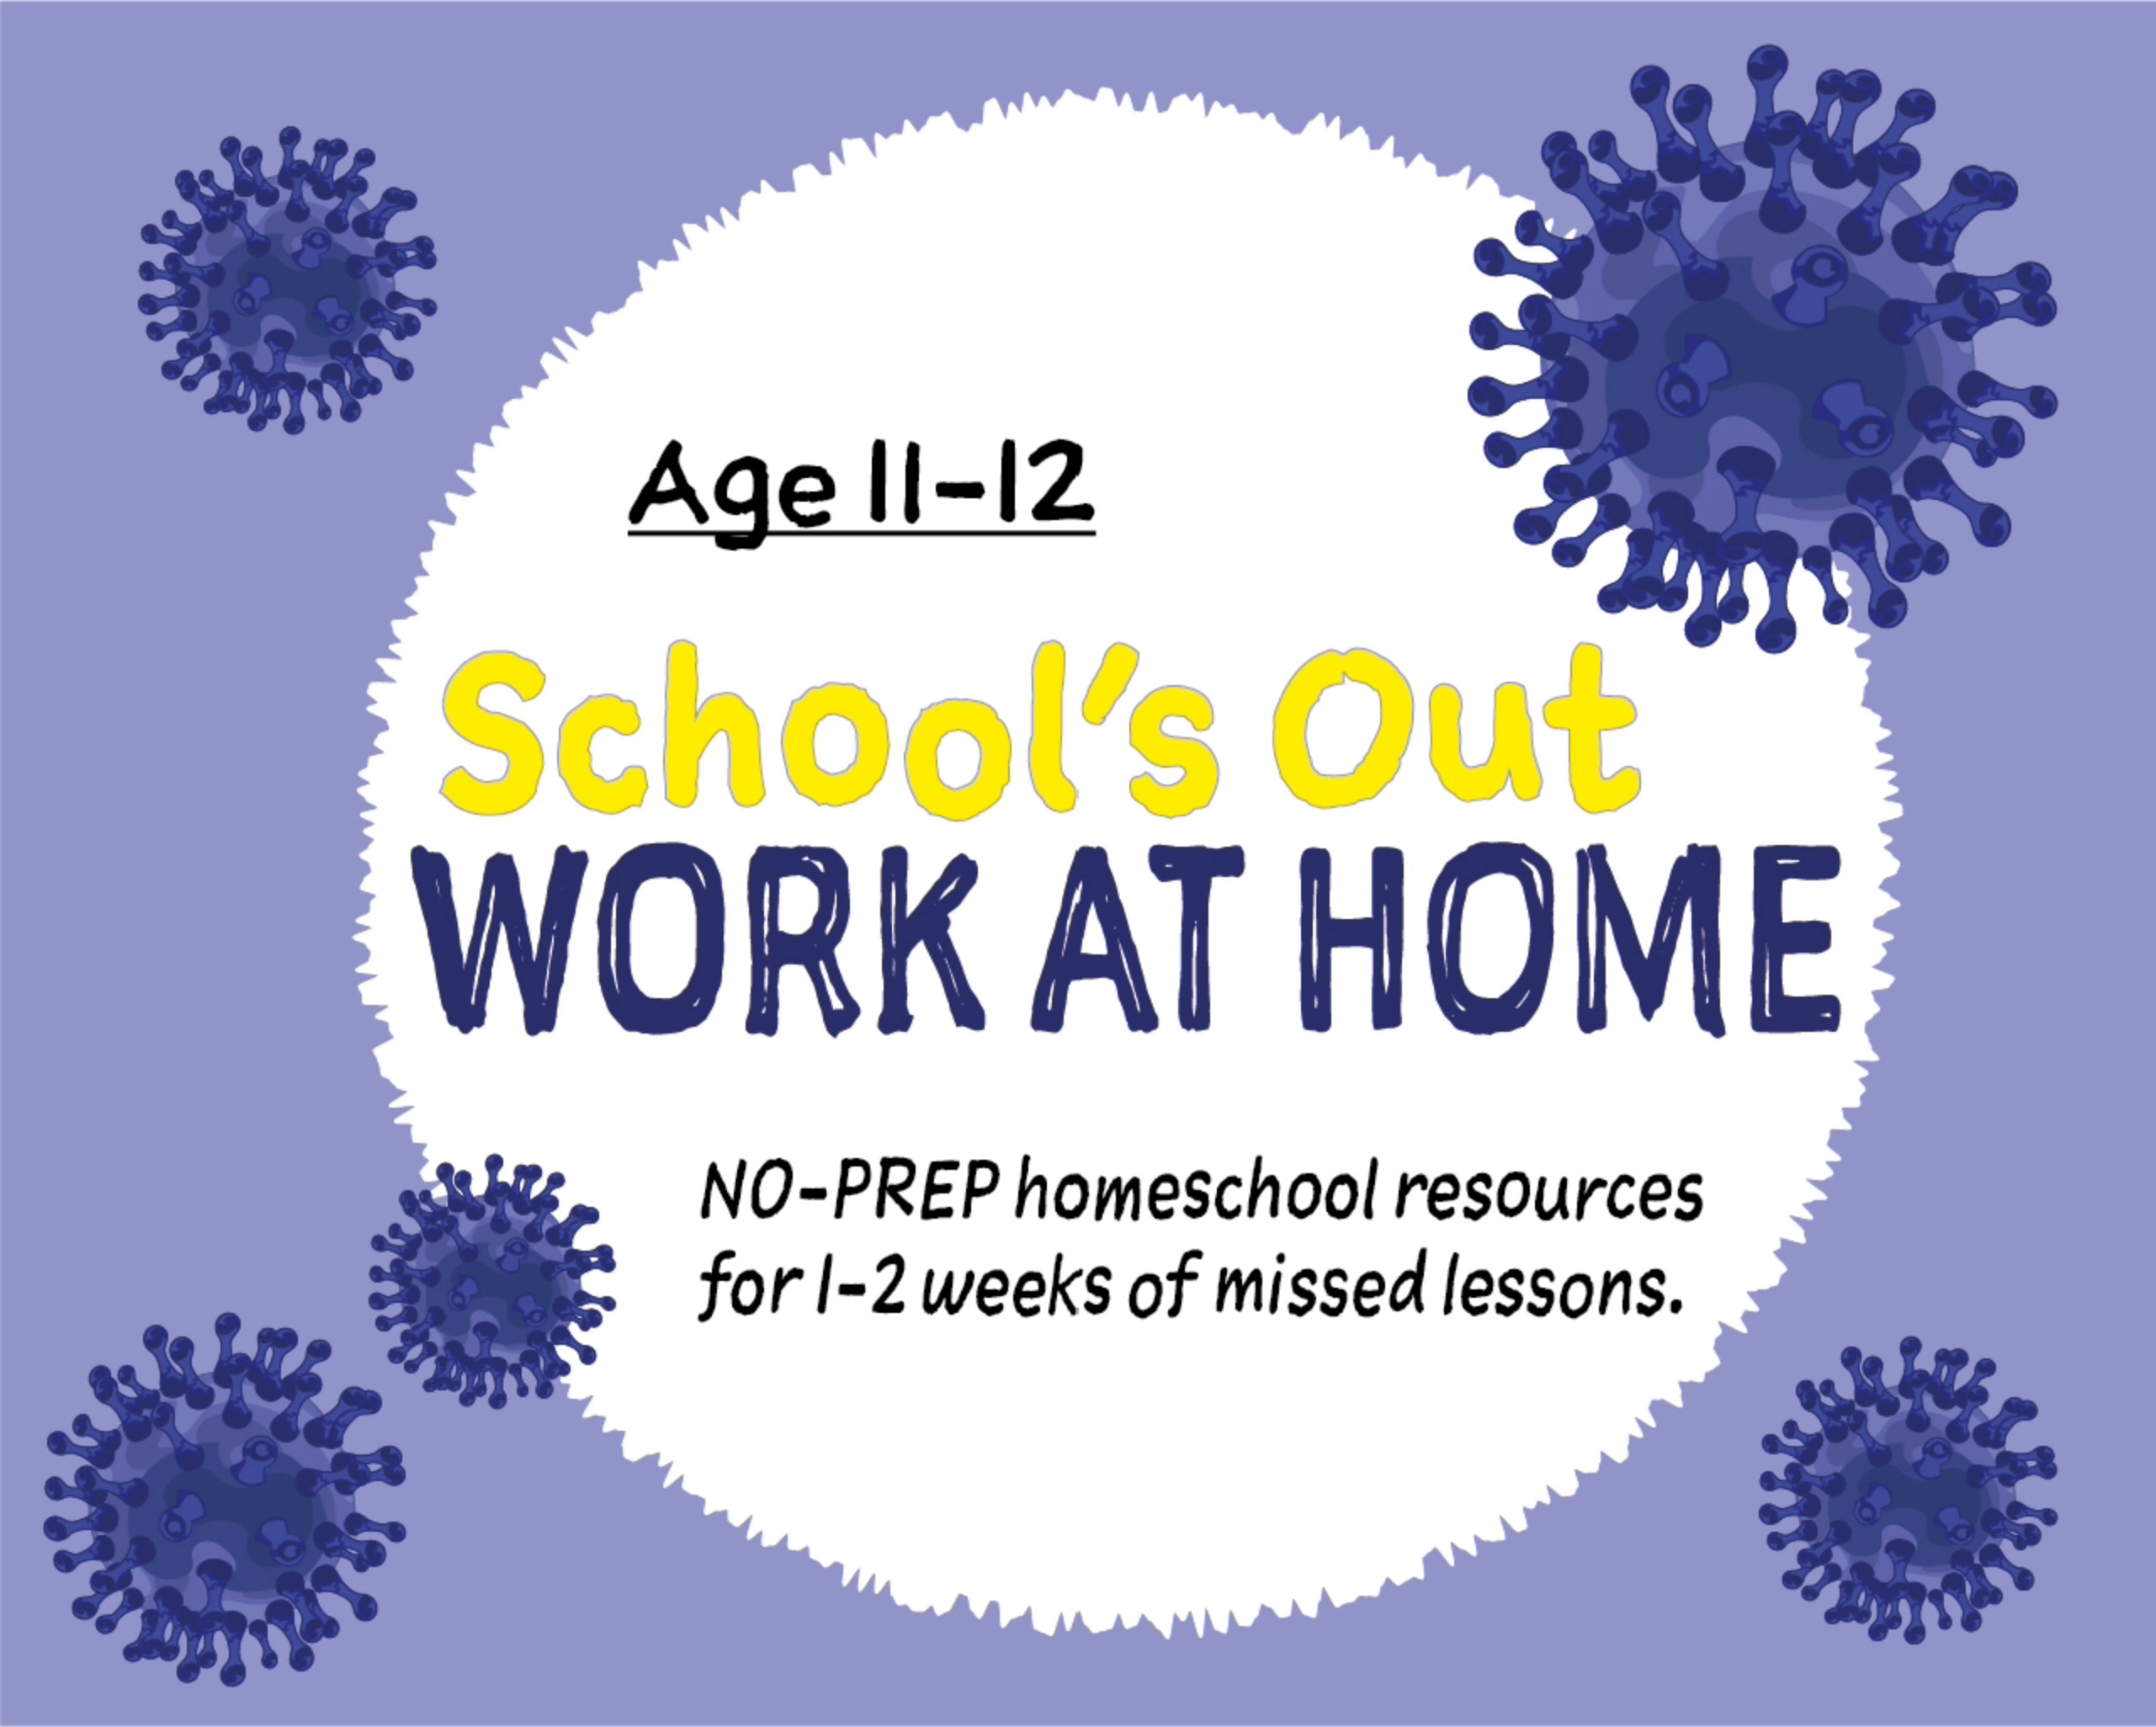 Schools Out For Coronavirus! Prepare For Schooling At Home (age 11-12 years) (year 7) (grade 6)